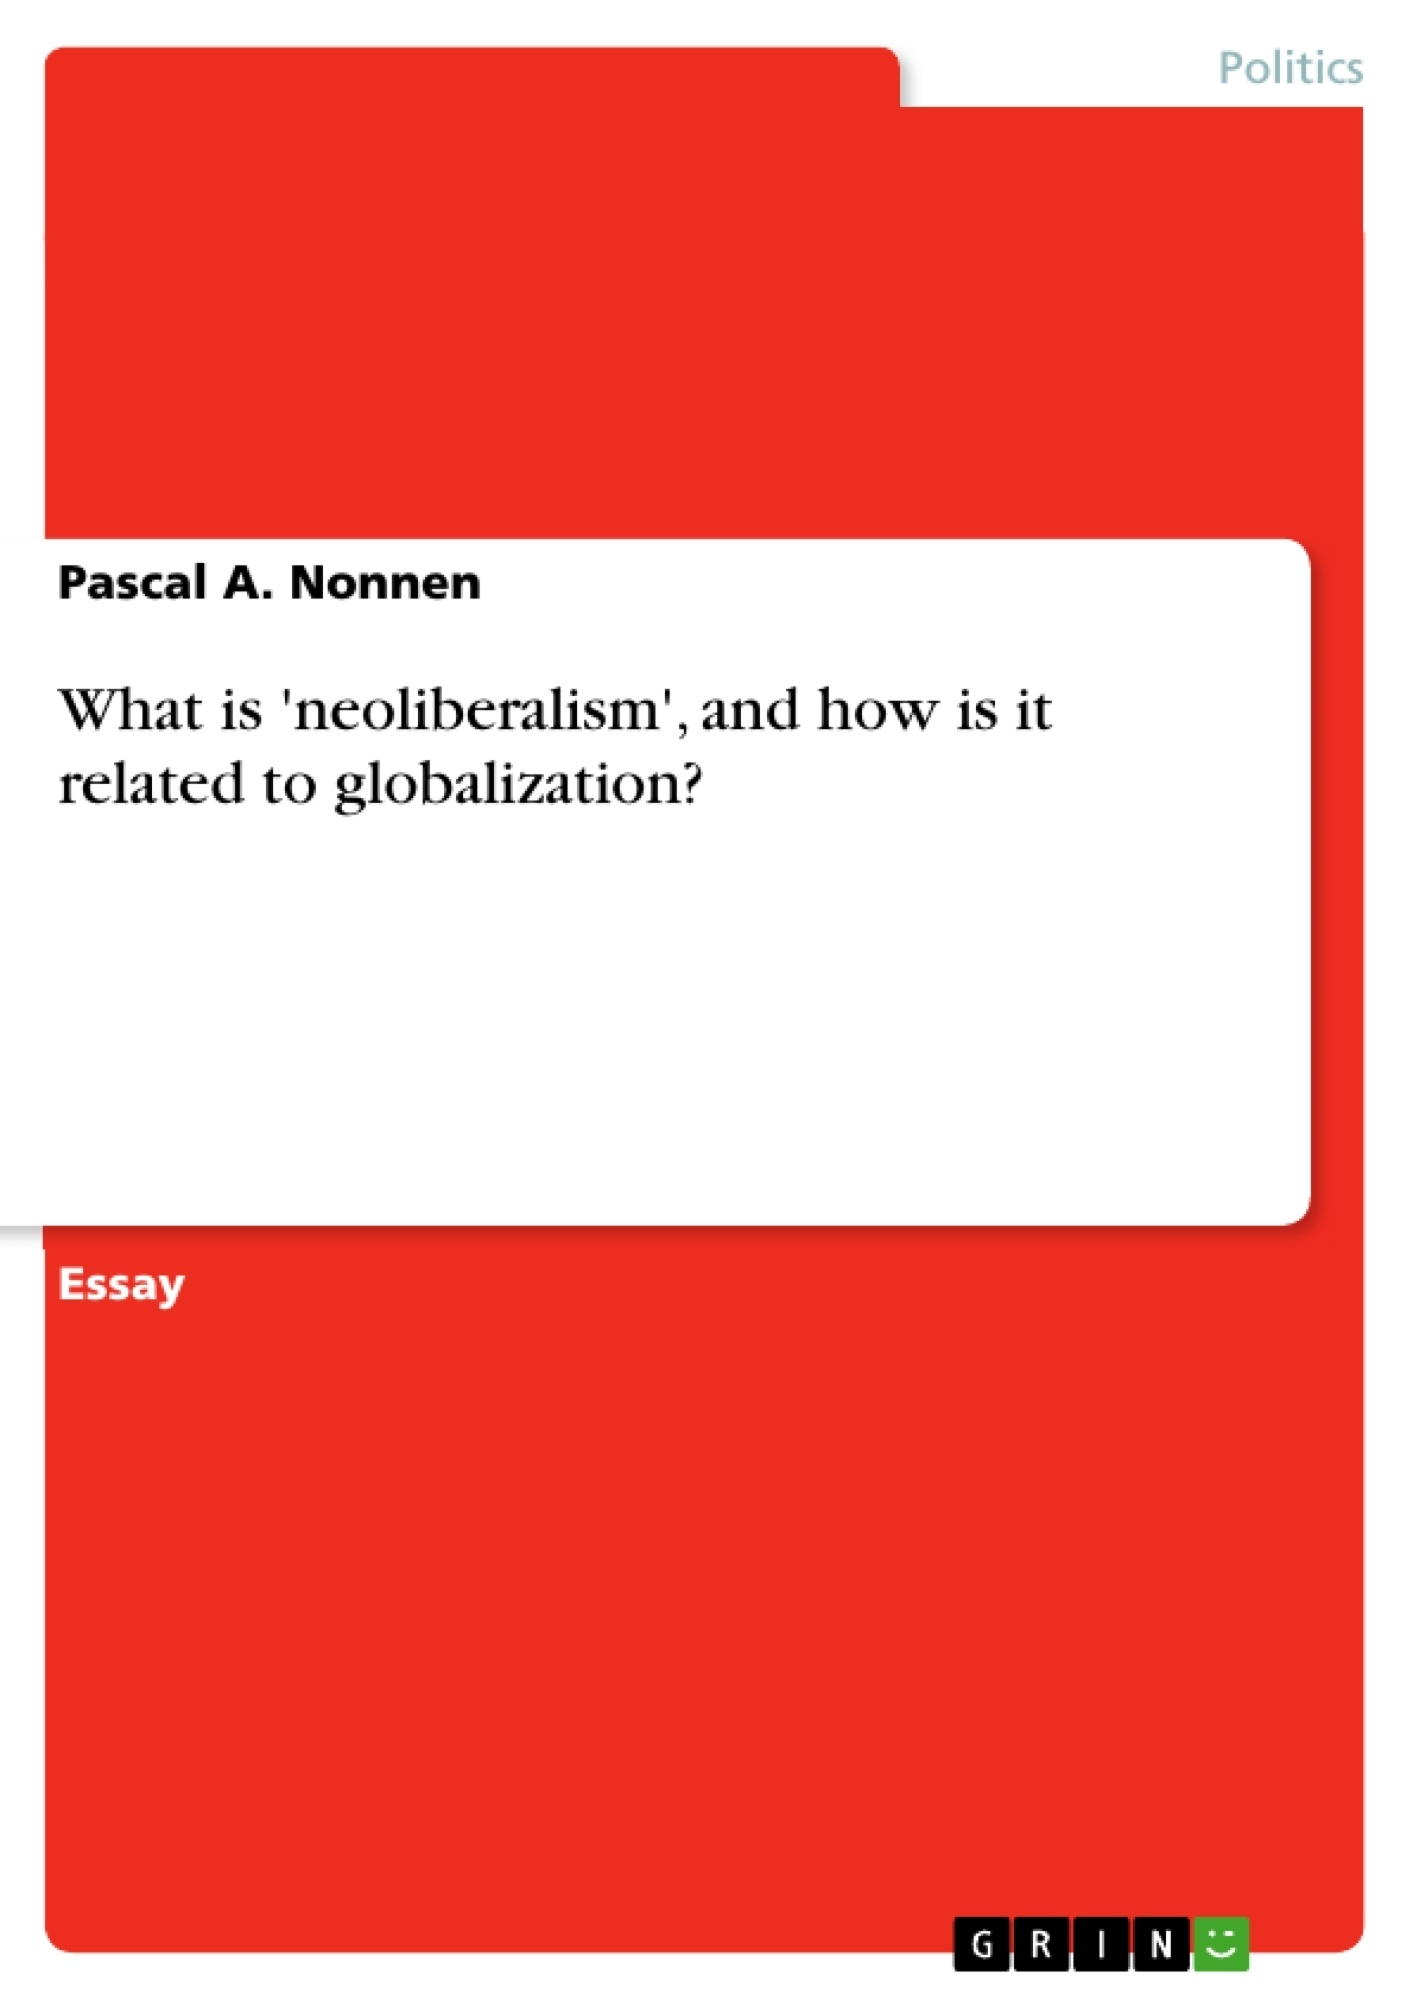 Title: What is 'neoliberalism', and how is it related to globalization?